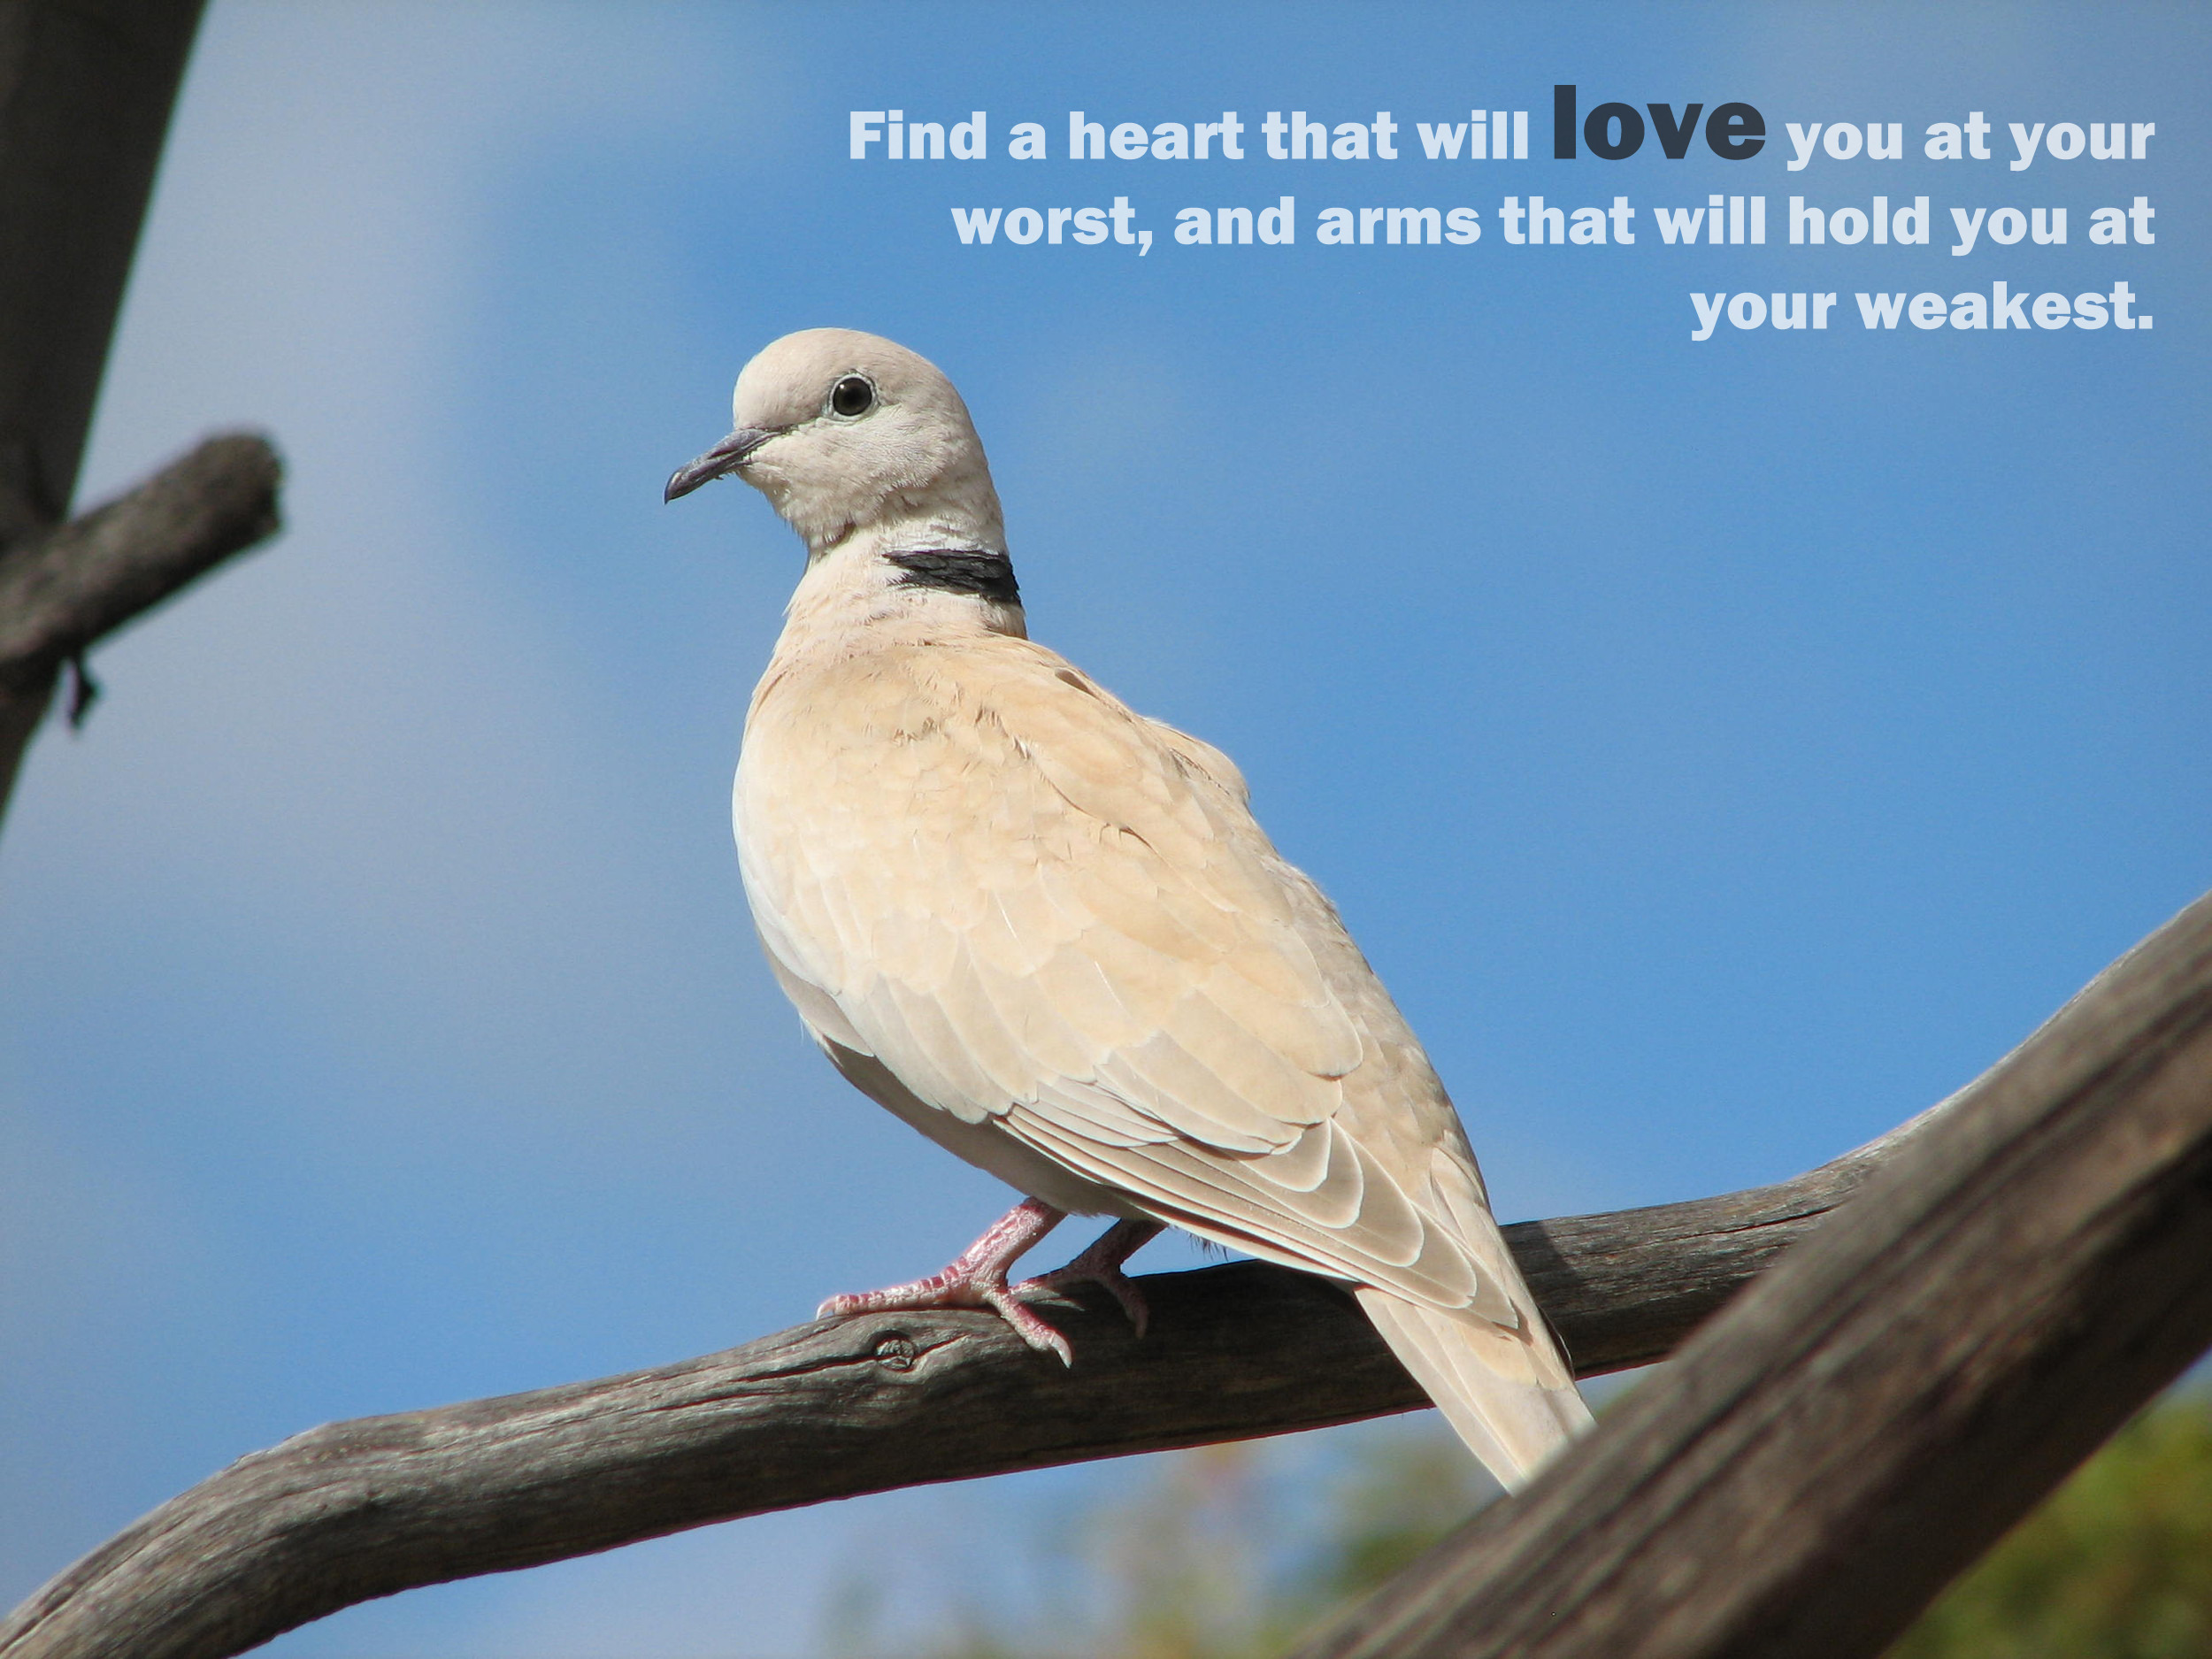 love doves Quotes quote HD Wallpaper